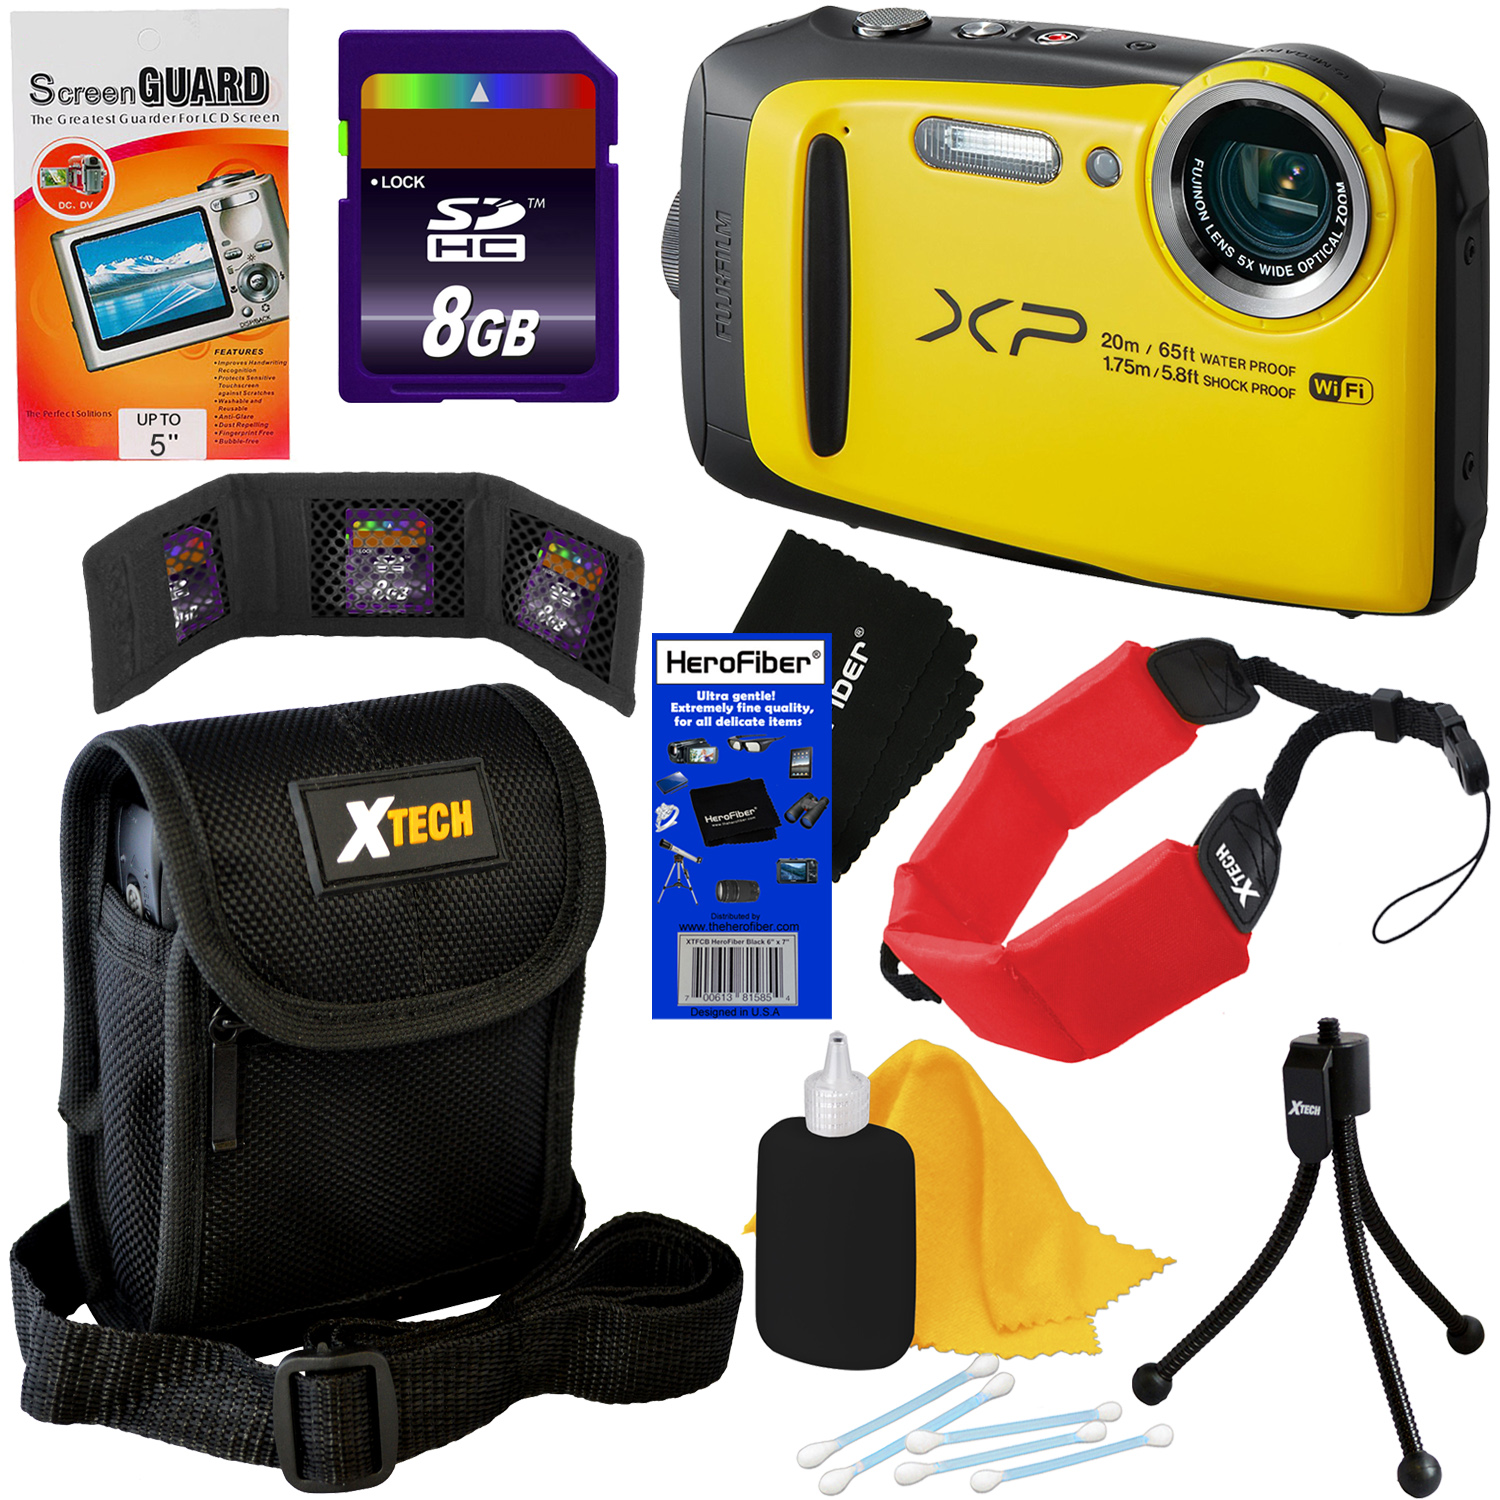 Fujifilm FinePix XP120 16.4 MP Waterproof & Shockproof Digital Camera with built-in Wi-Fi & 5x Optical Zoom (Yellow) + 8pc 8GB Accessory Kit w/ HeroFiber Gentle Cleaning Cloth